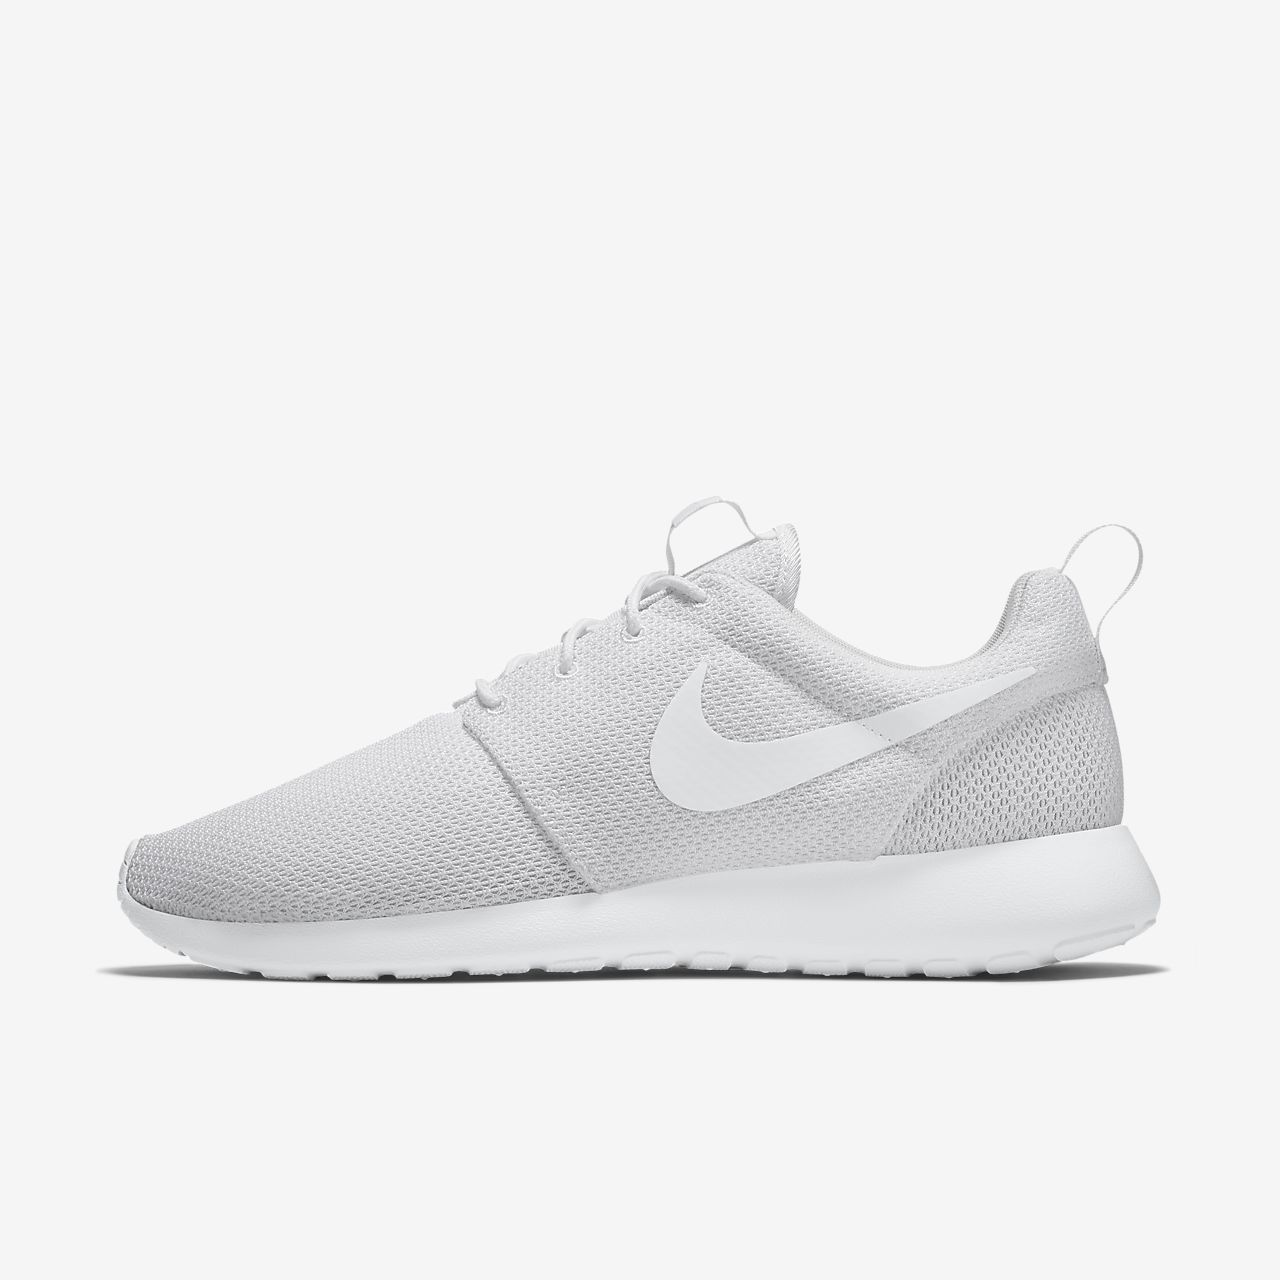 5a1e1a310388 Nike Roshe One Men s Shoe. Nike.com